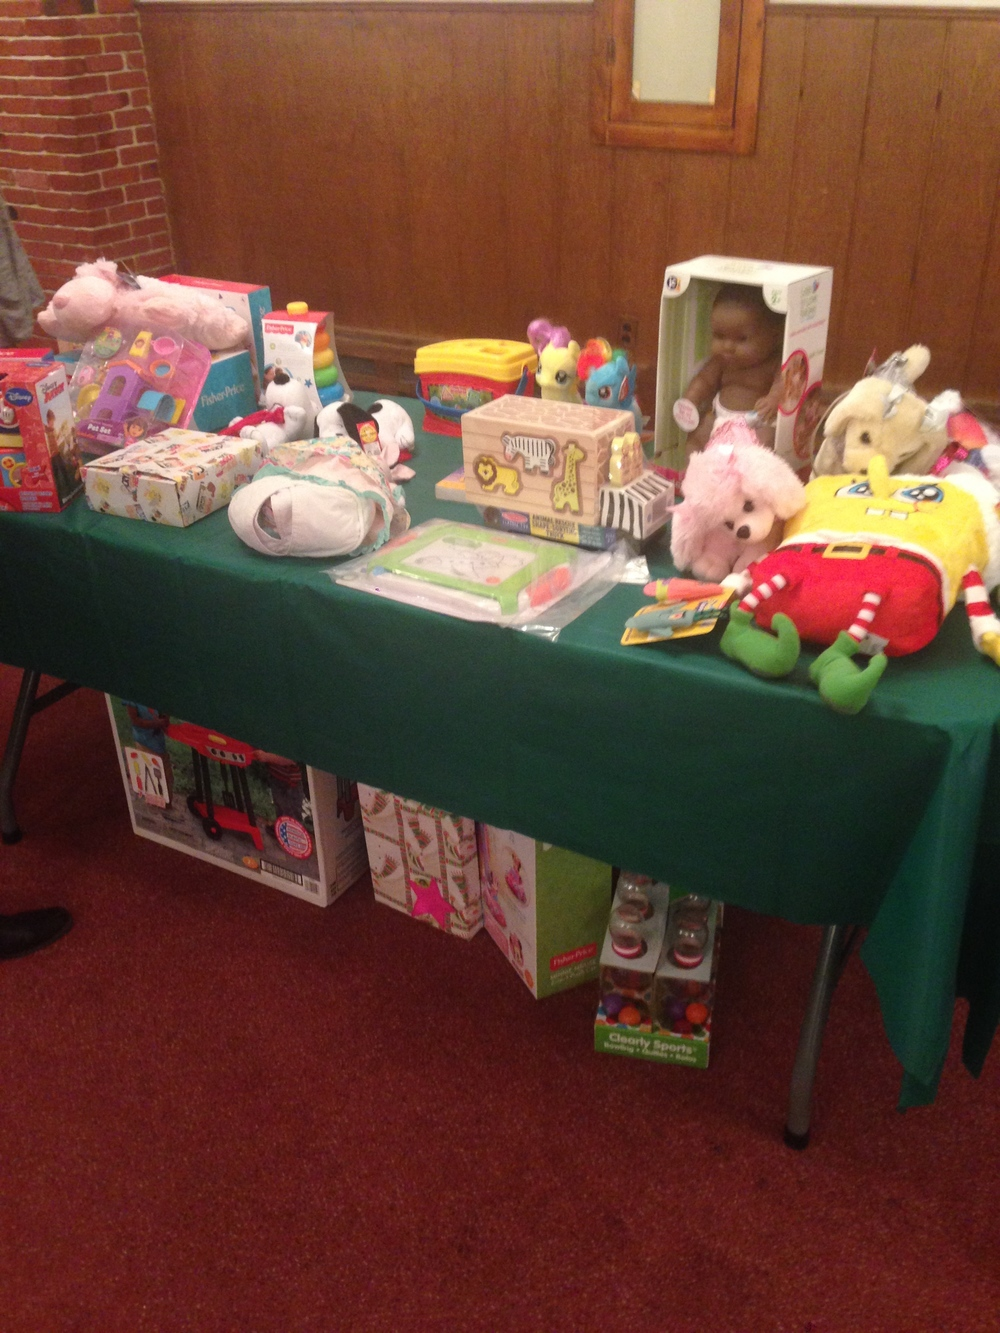 Some of the toys to be given away.